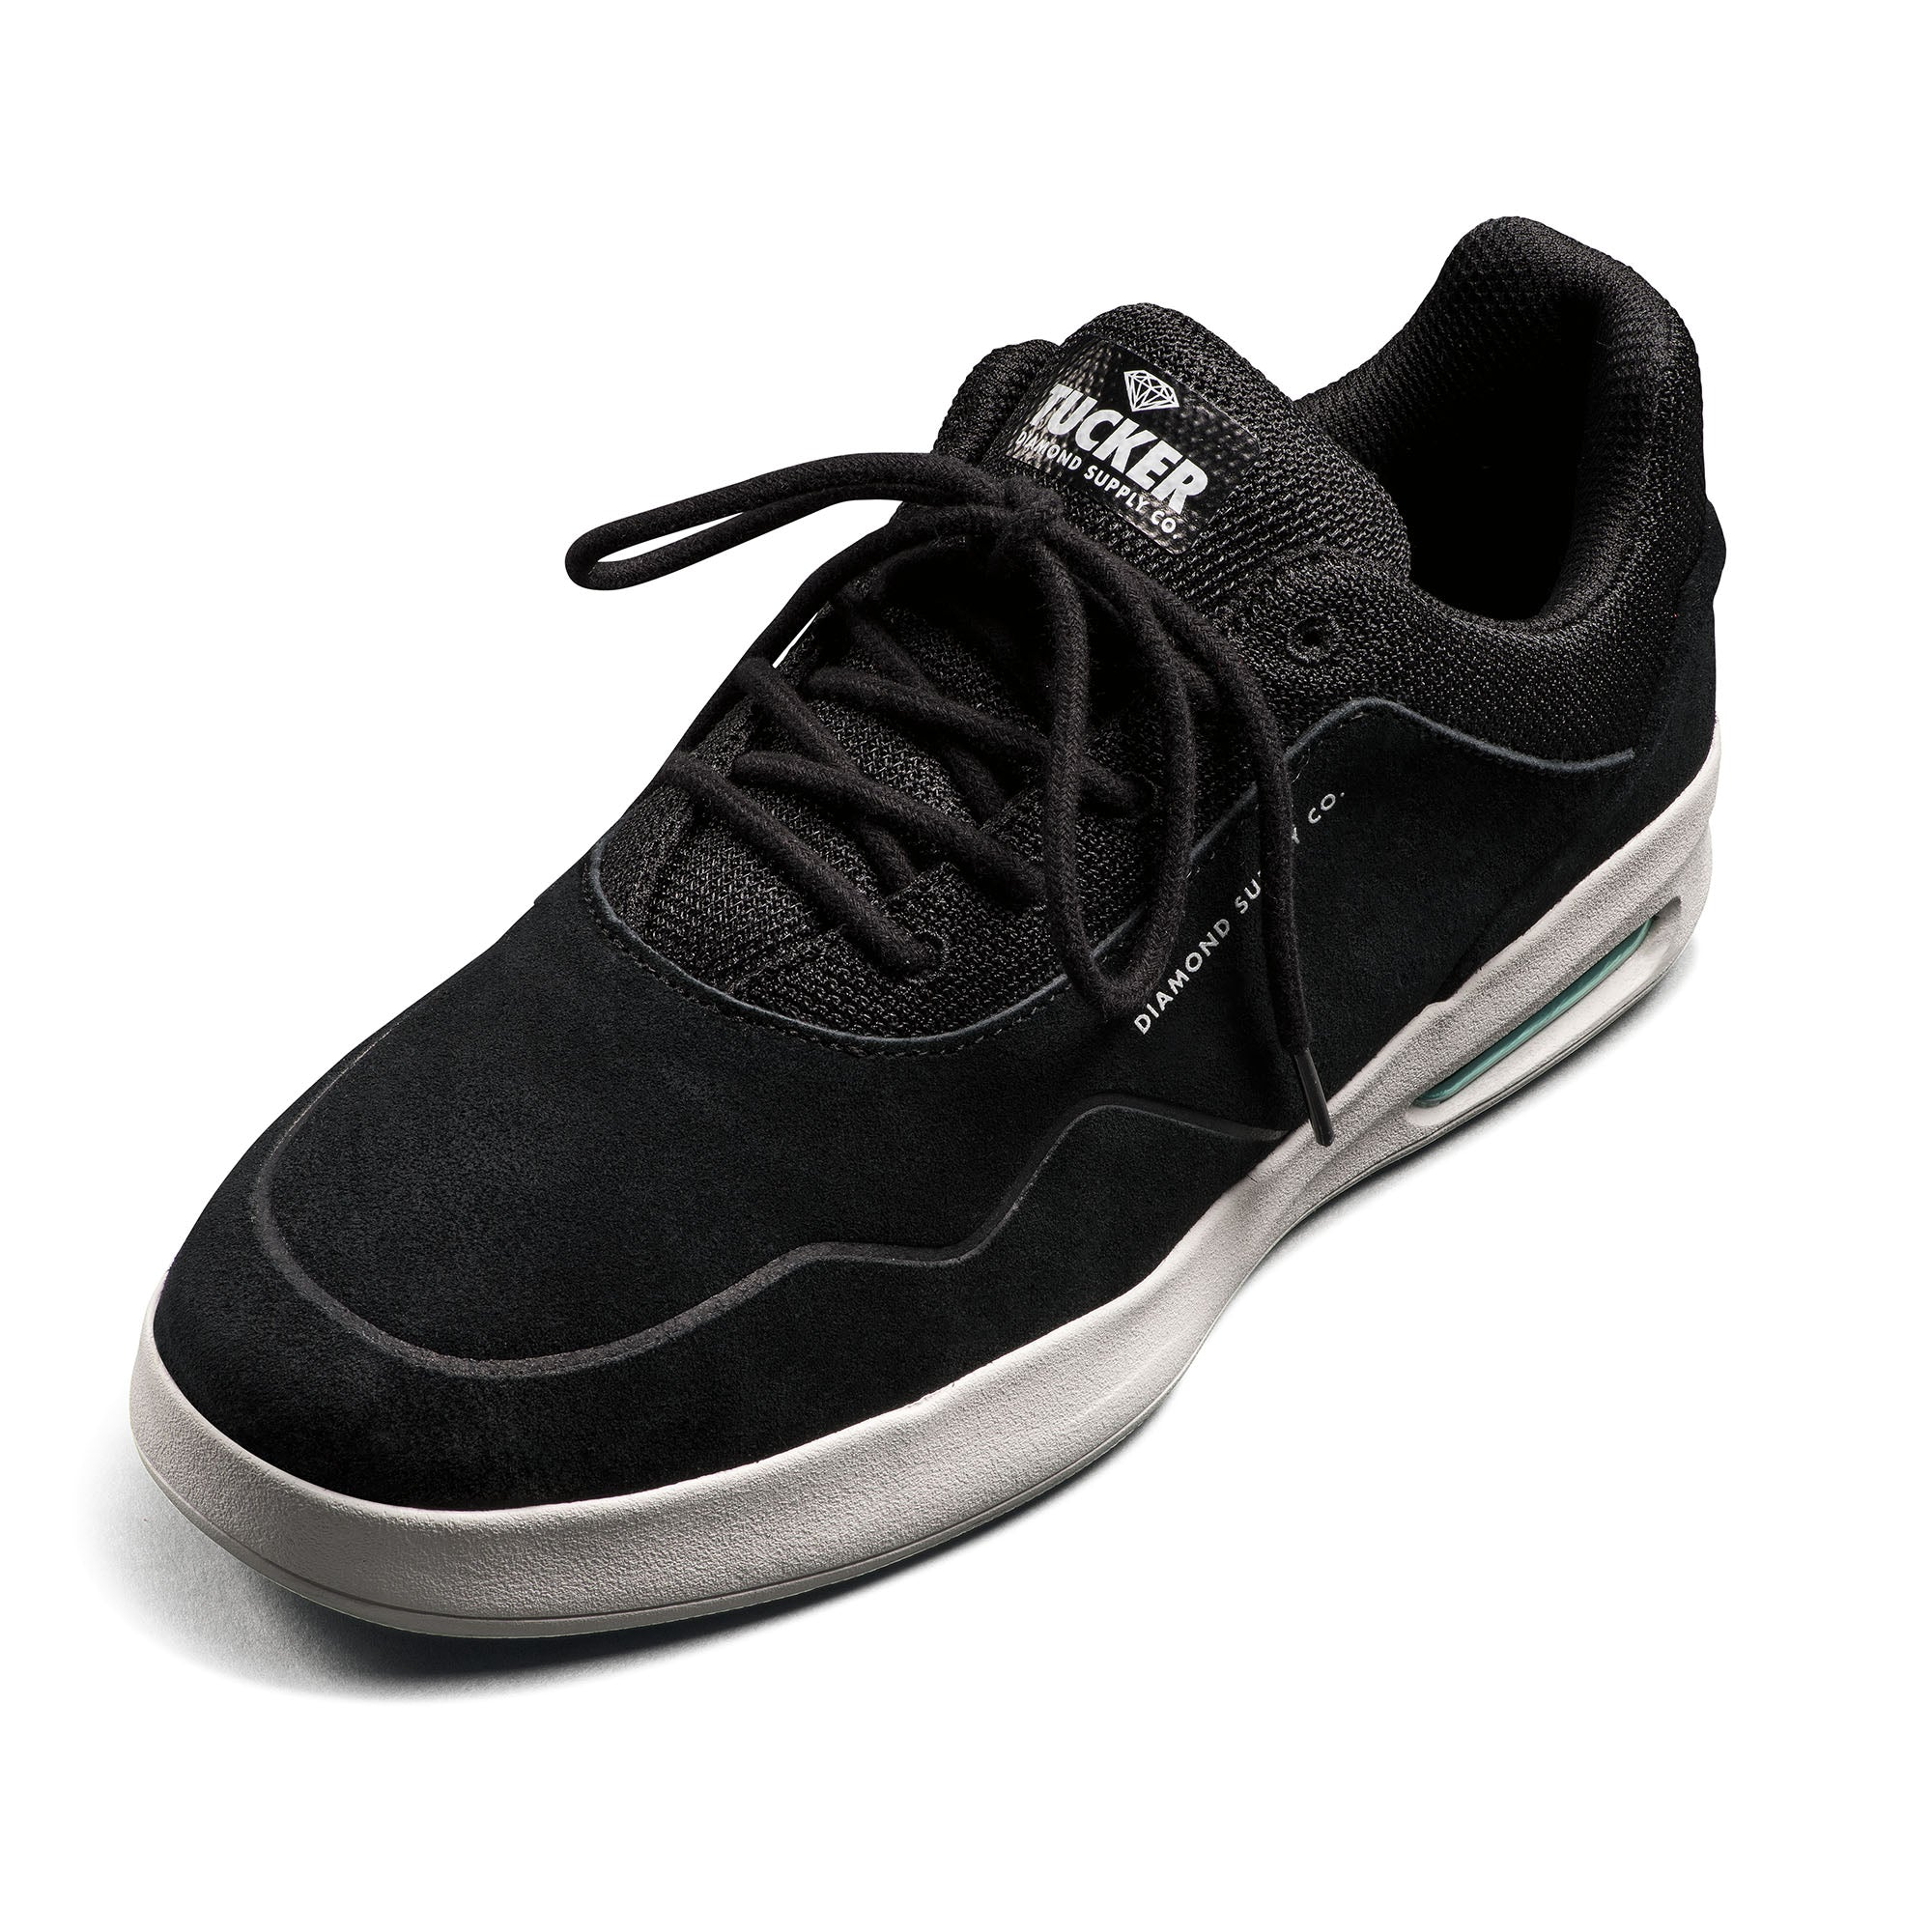 sale icon diamond footwear atbshop suede in skate navy co uk shoes shoe